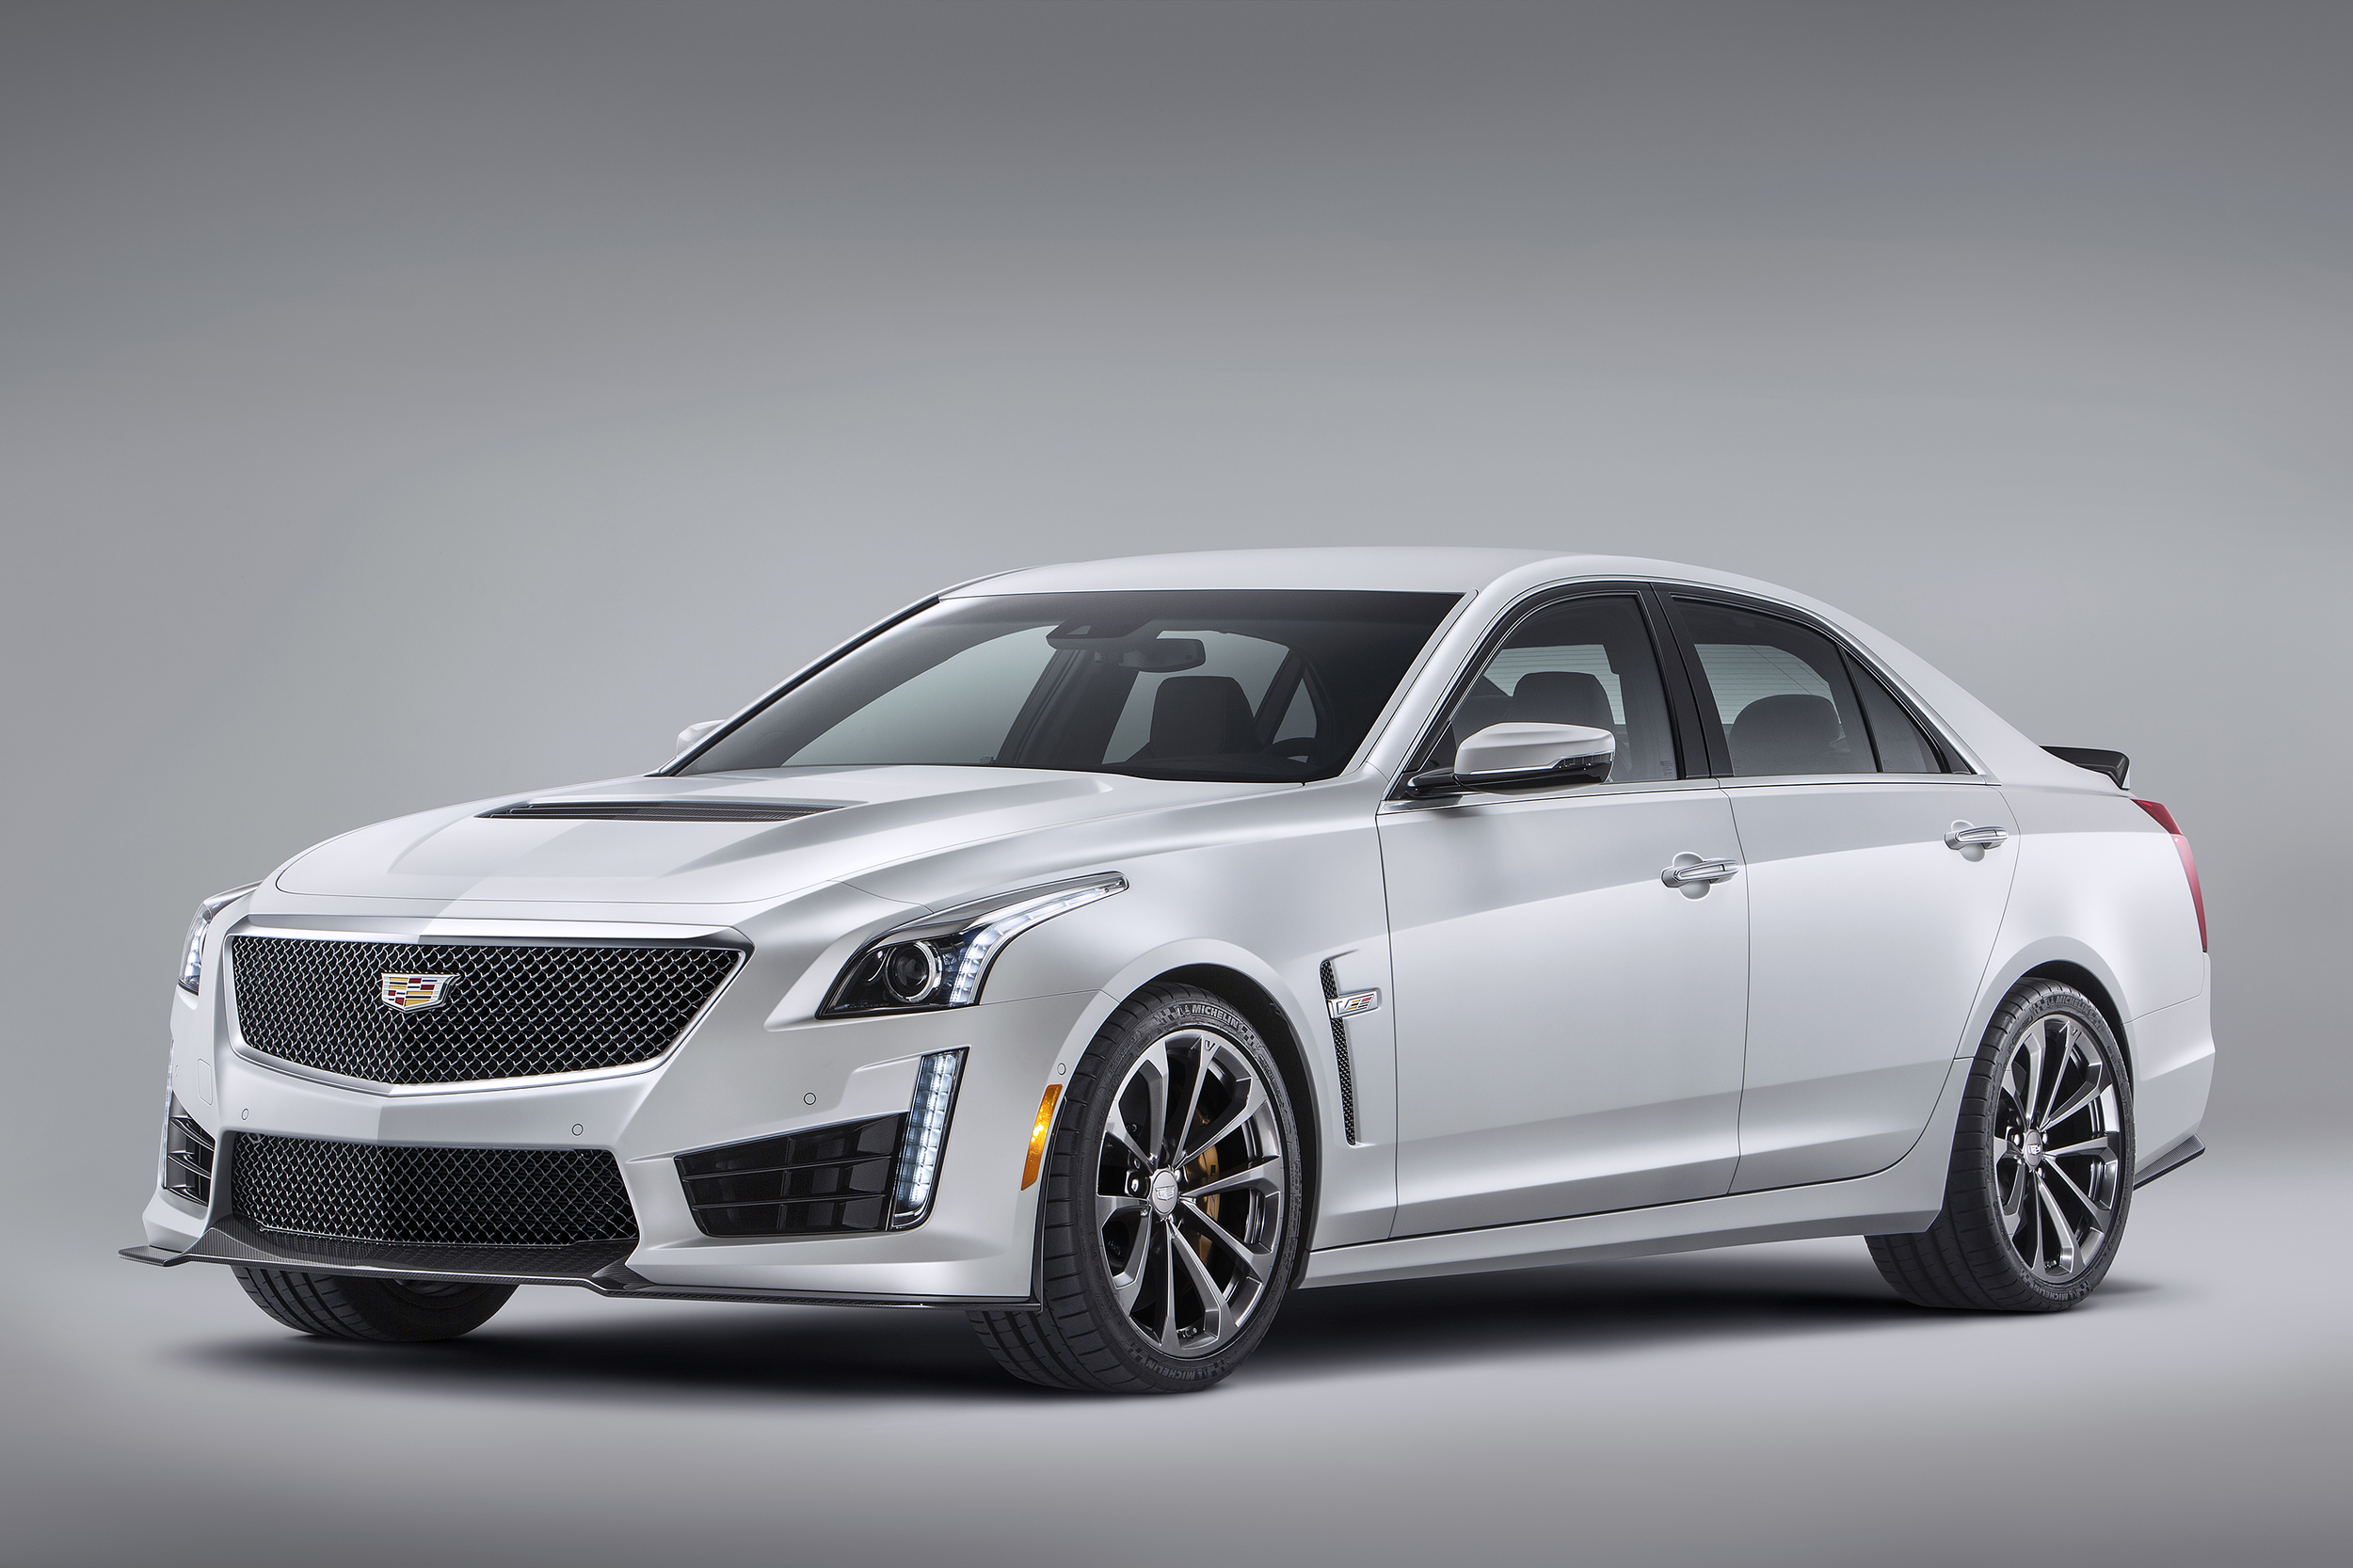 001-2016-cadillac-cts-v-1 Cool Review About Cadilac 2016 with Amusing Photos Cars Review